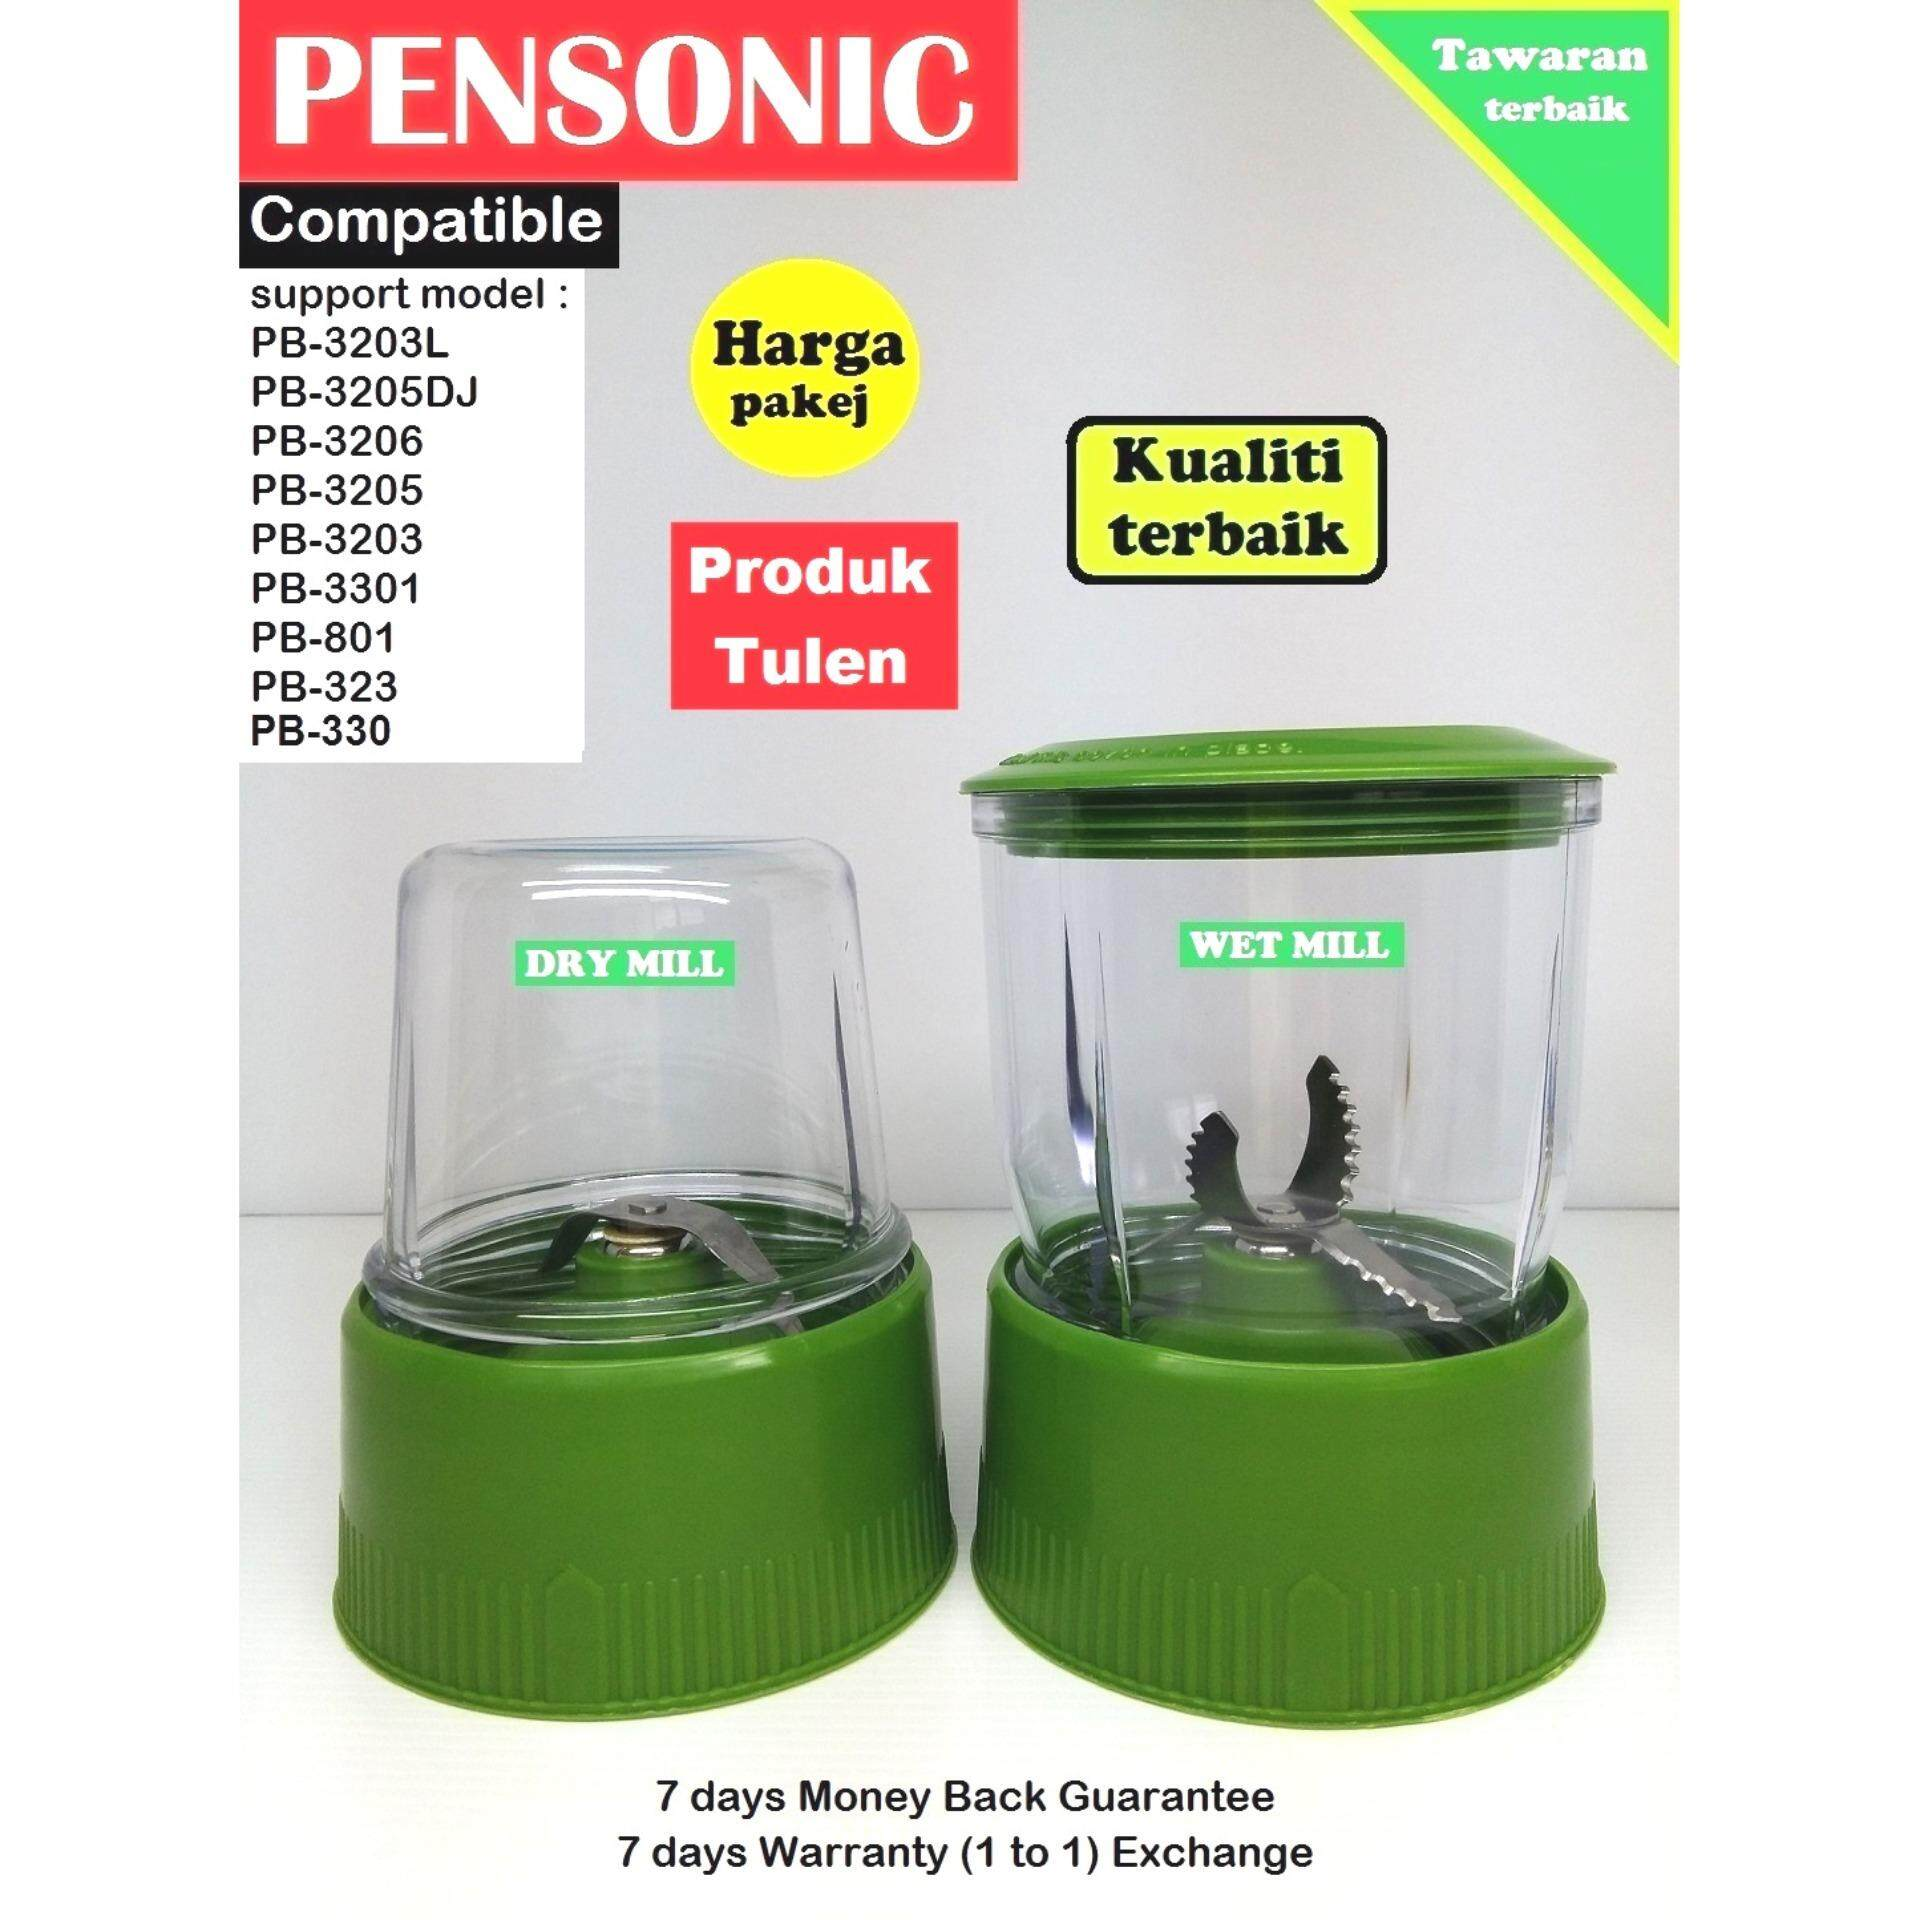 Blender Jug Support Pensonic (Dry Mill And Wet Mill) 1